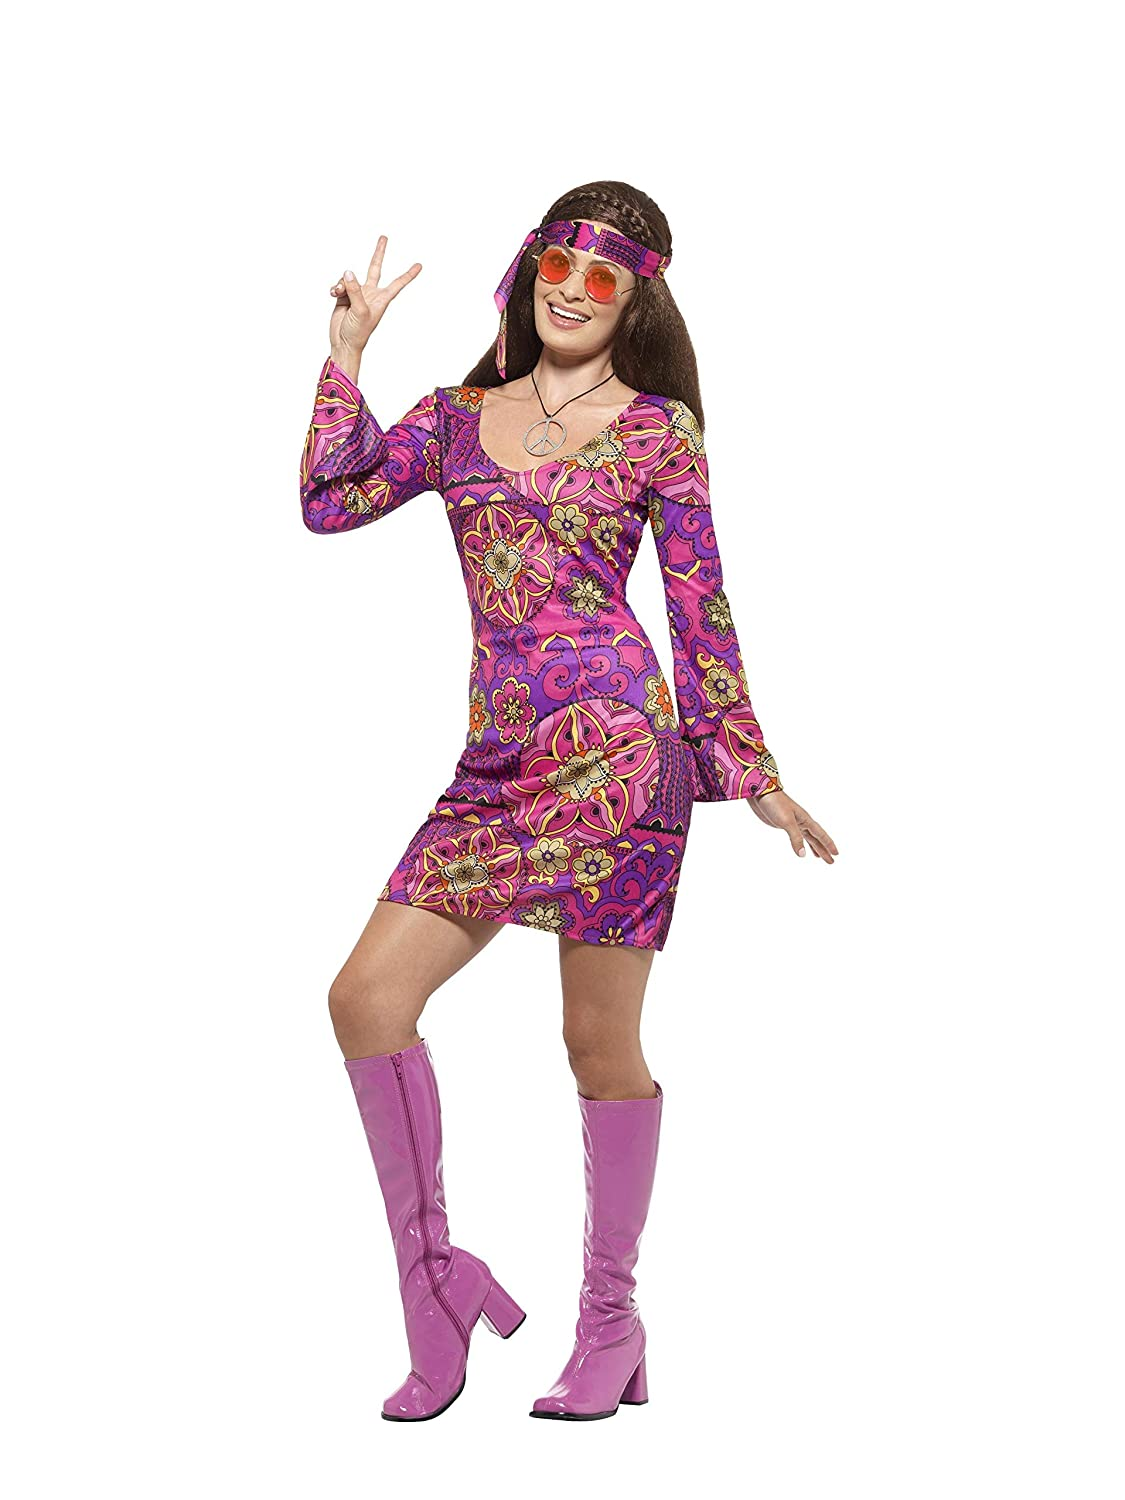 Hippie Costumes, Hippie Outfits Smiffys Hippie Chick Adult Costume Purple $32.00 AT vintagedancer.com